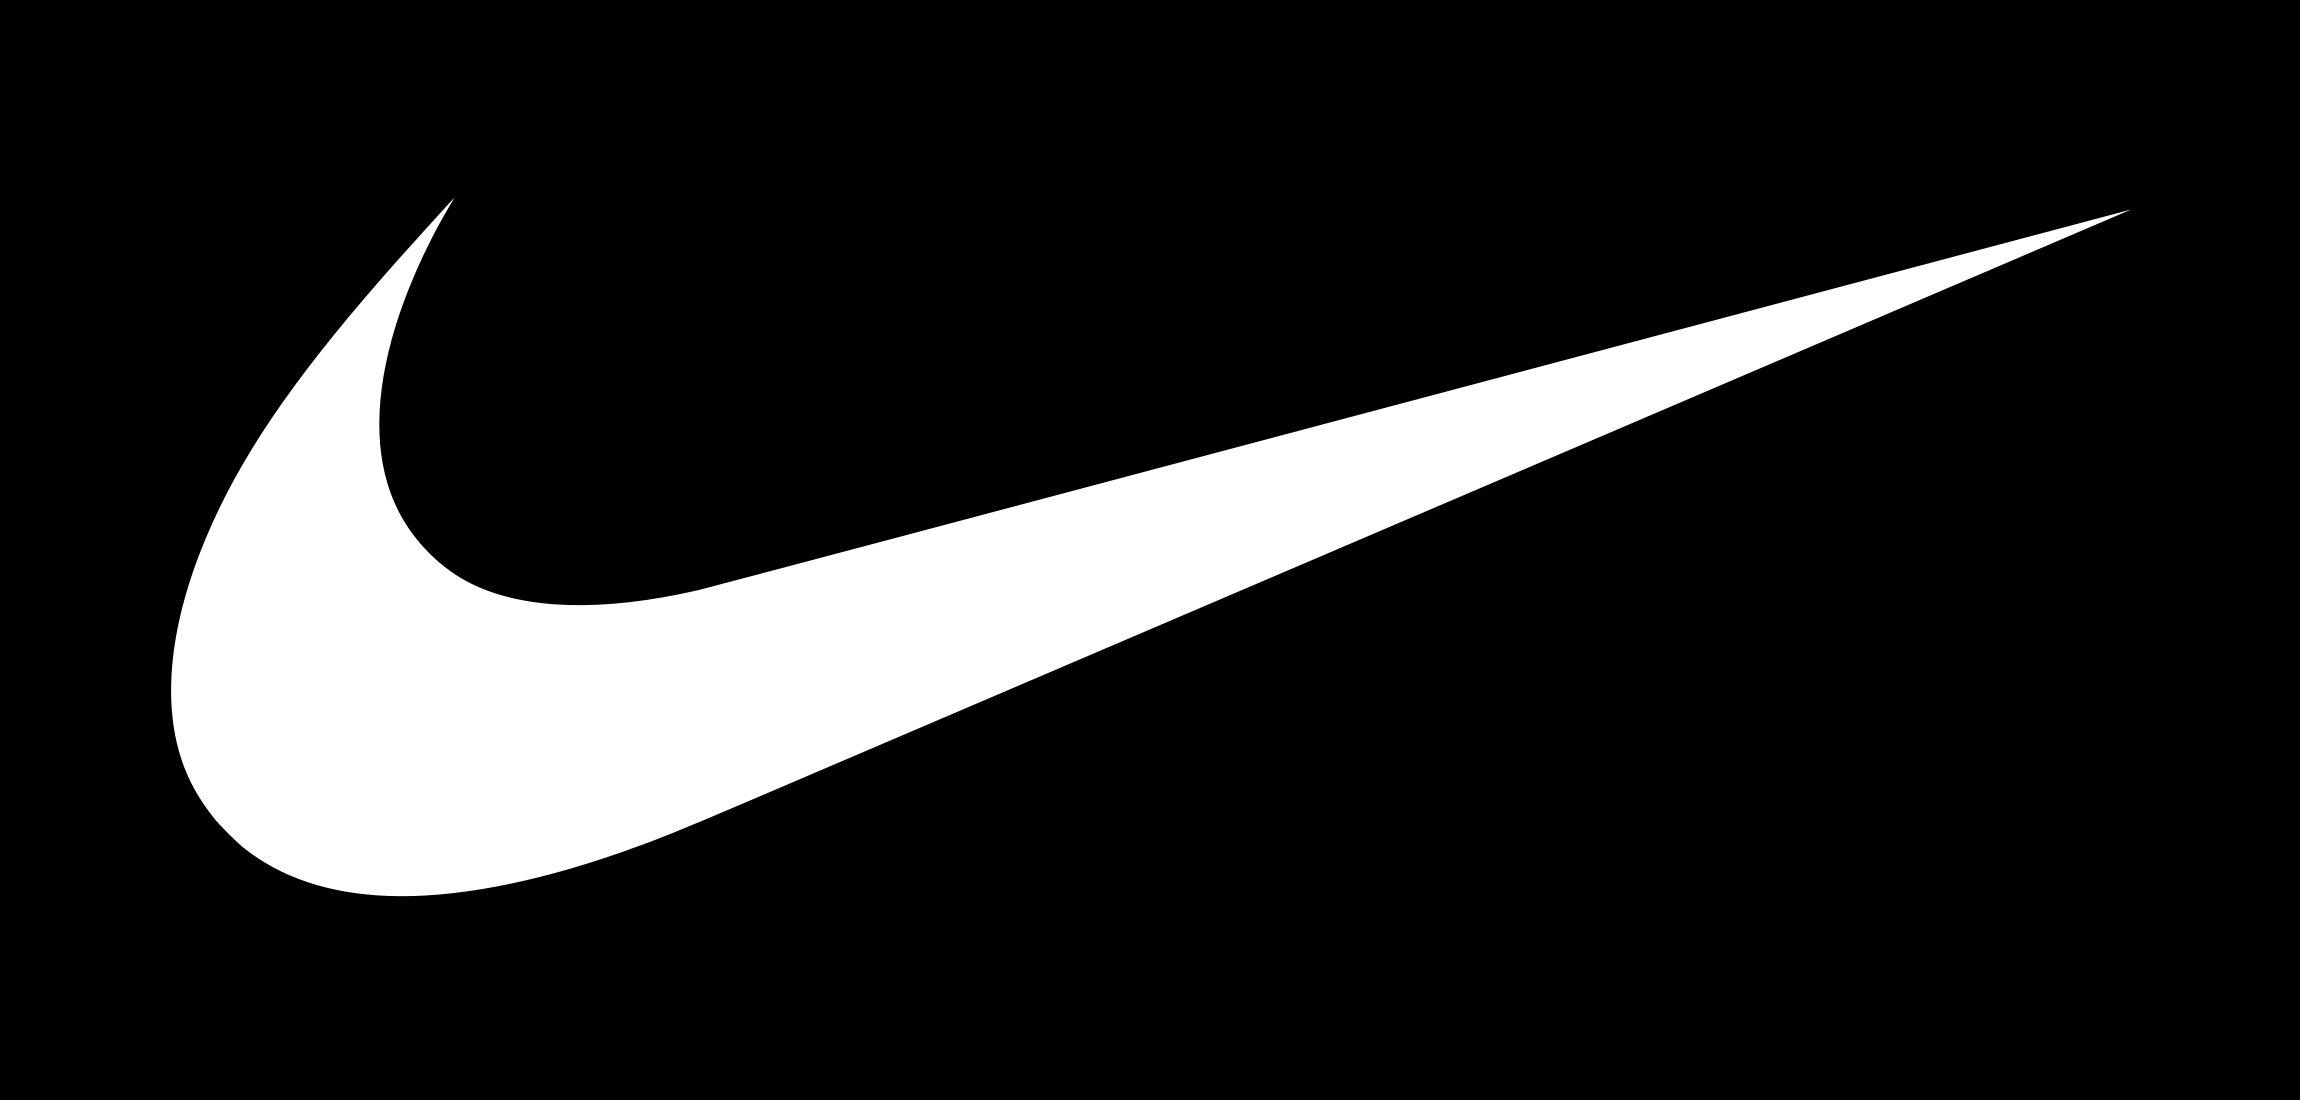 Nike logo nike symbol meaning history and evolution nike symbol buycottarizona Choice Image